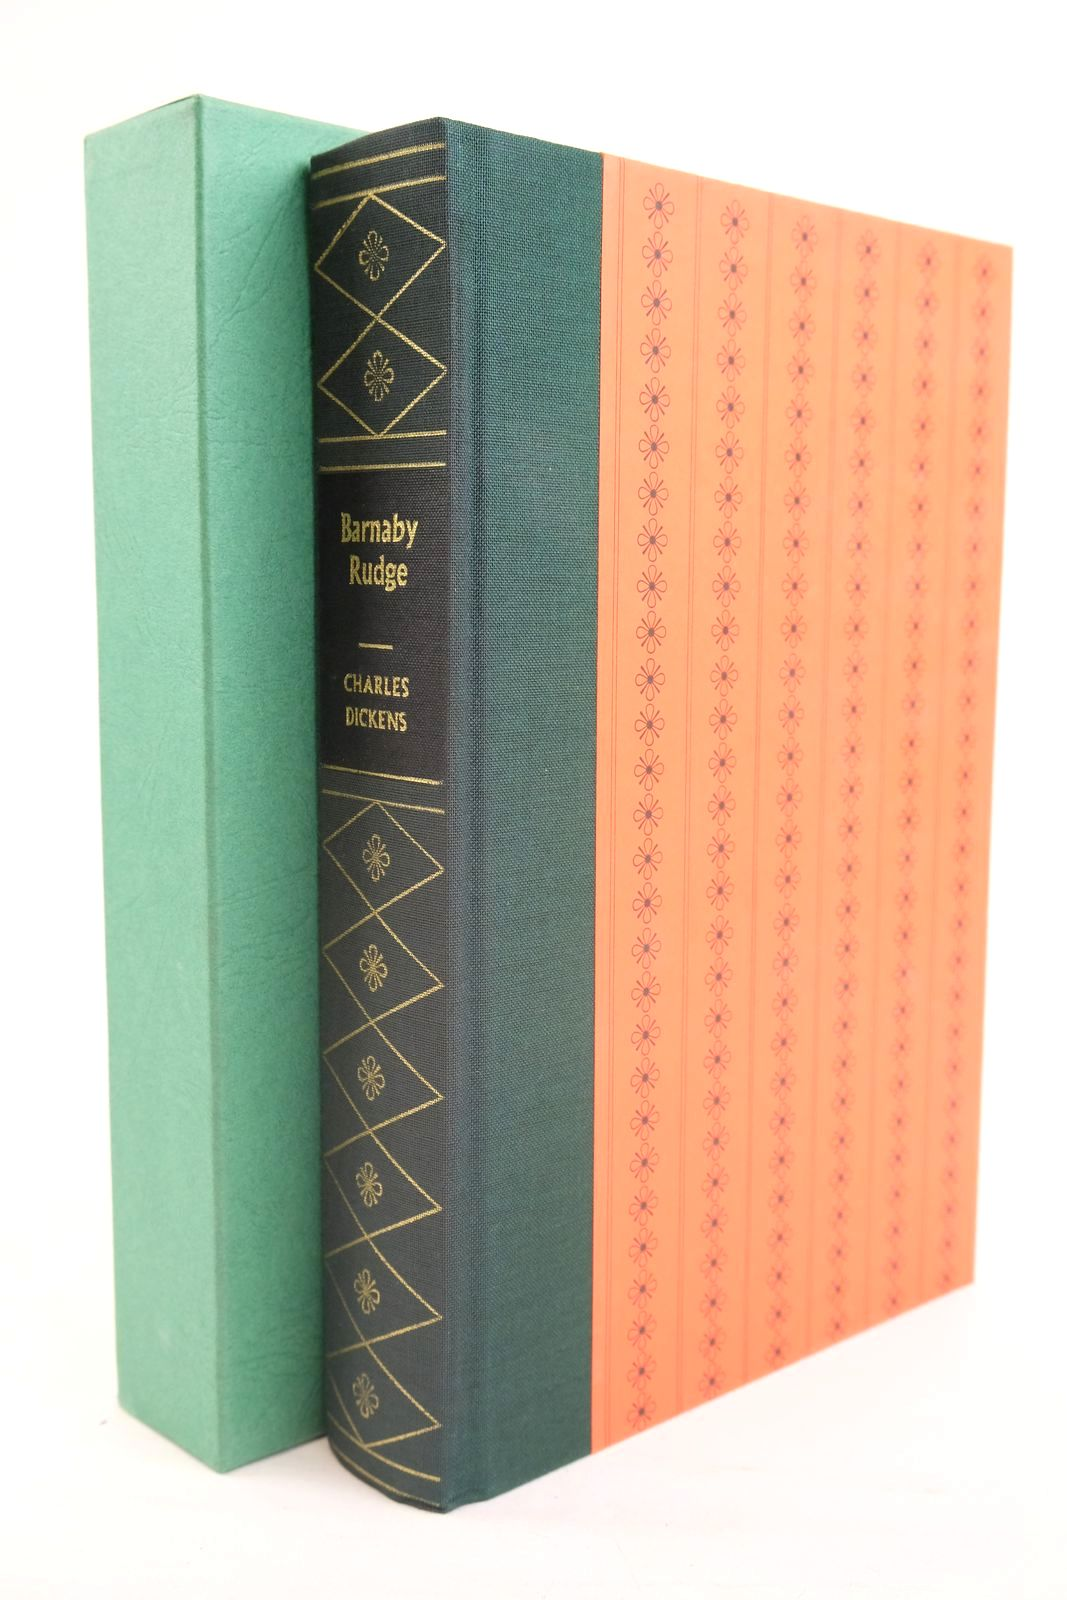 Photo of BARNABY RUDGE A TALE OF THE RIOTS OF 'EIGHTY written by Dickens, Charles illustrated by Keeping, Charles published by Folio Society (STOCK CODE: 1320026)  for sale by Stella & Rose's Books